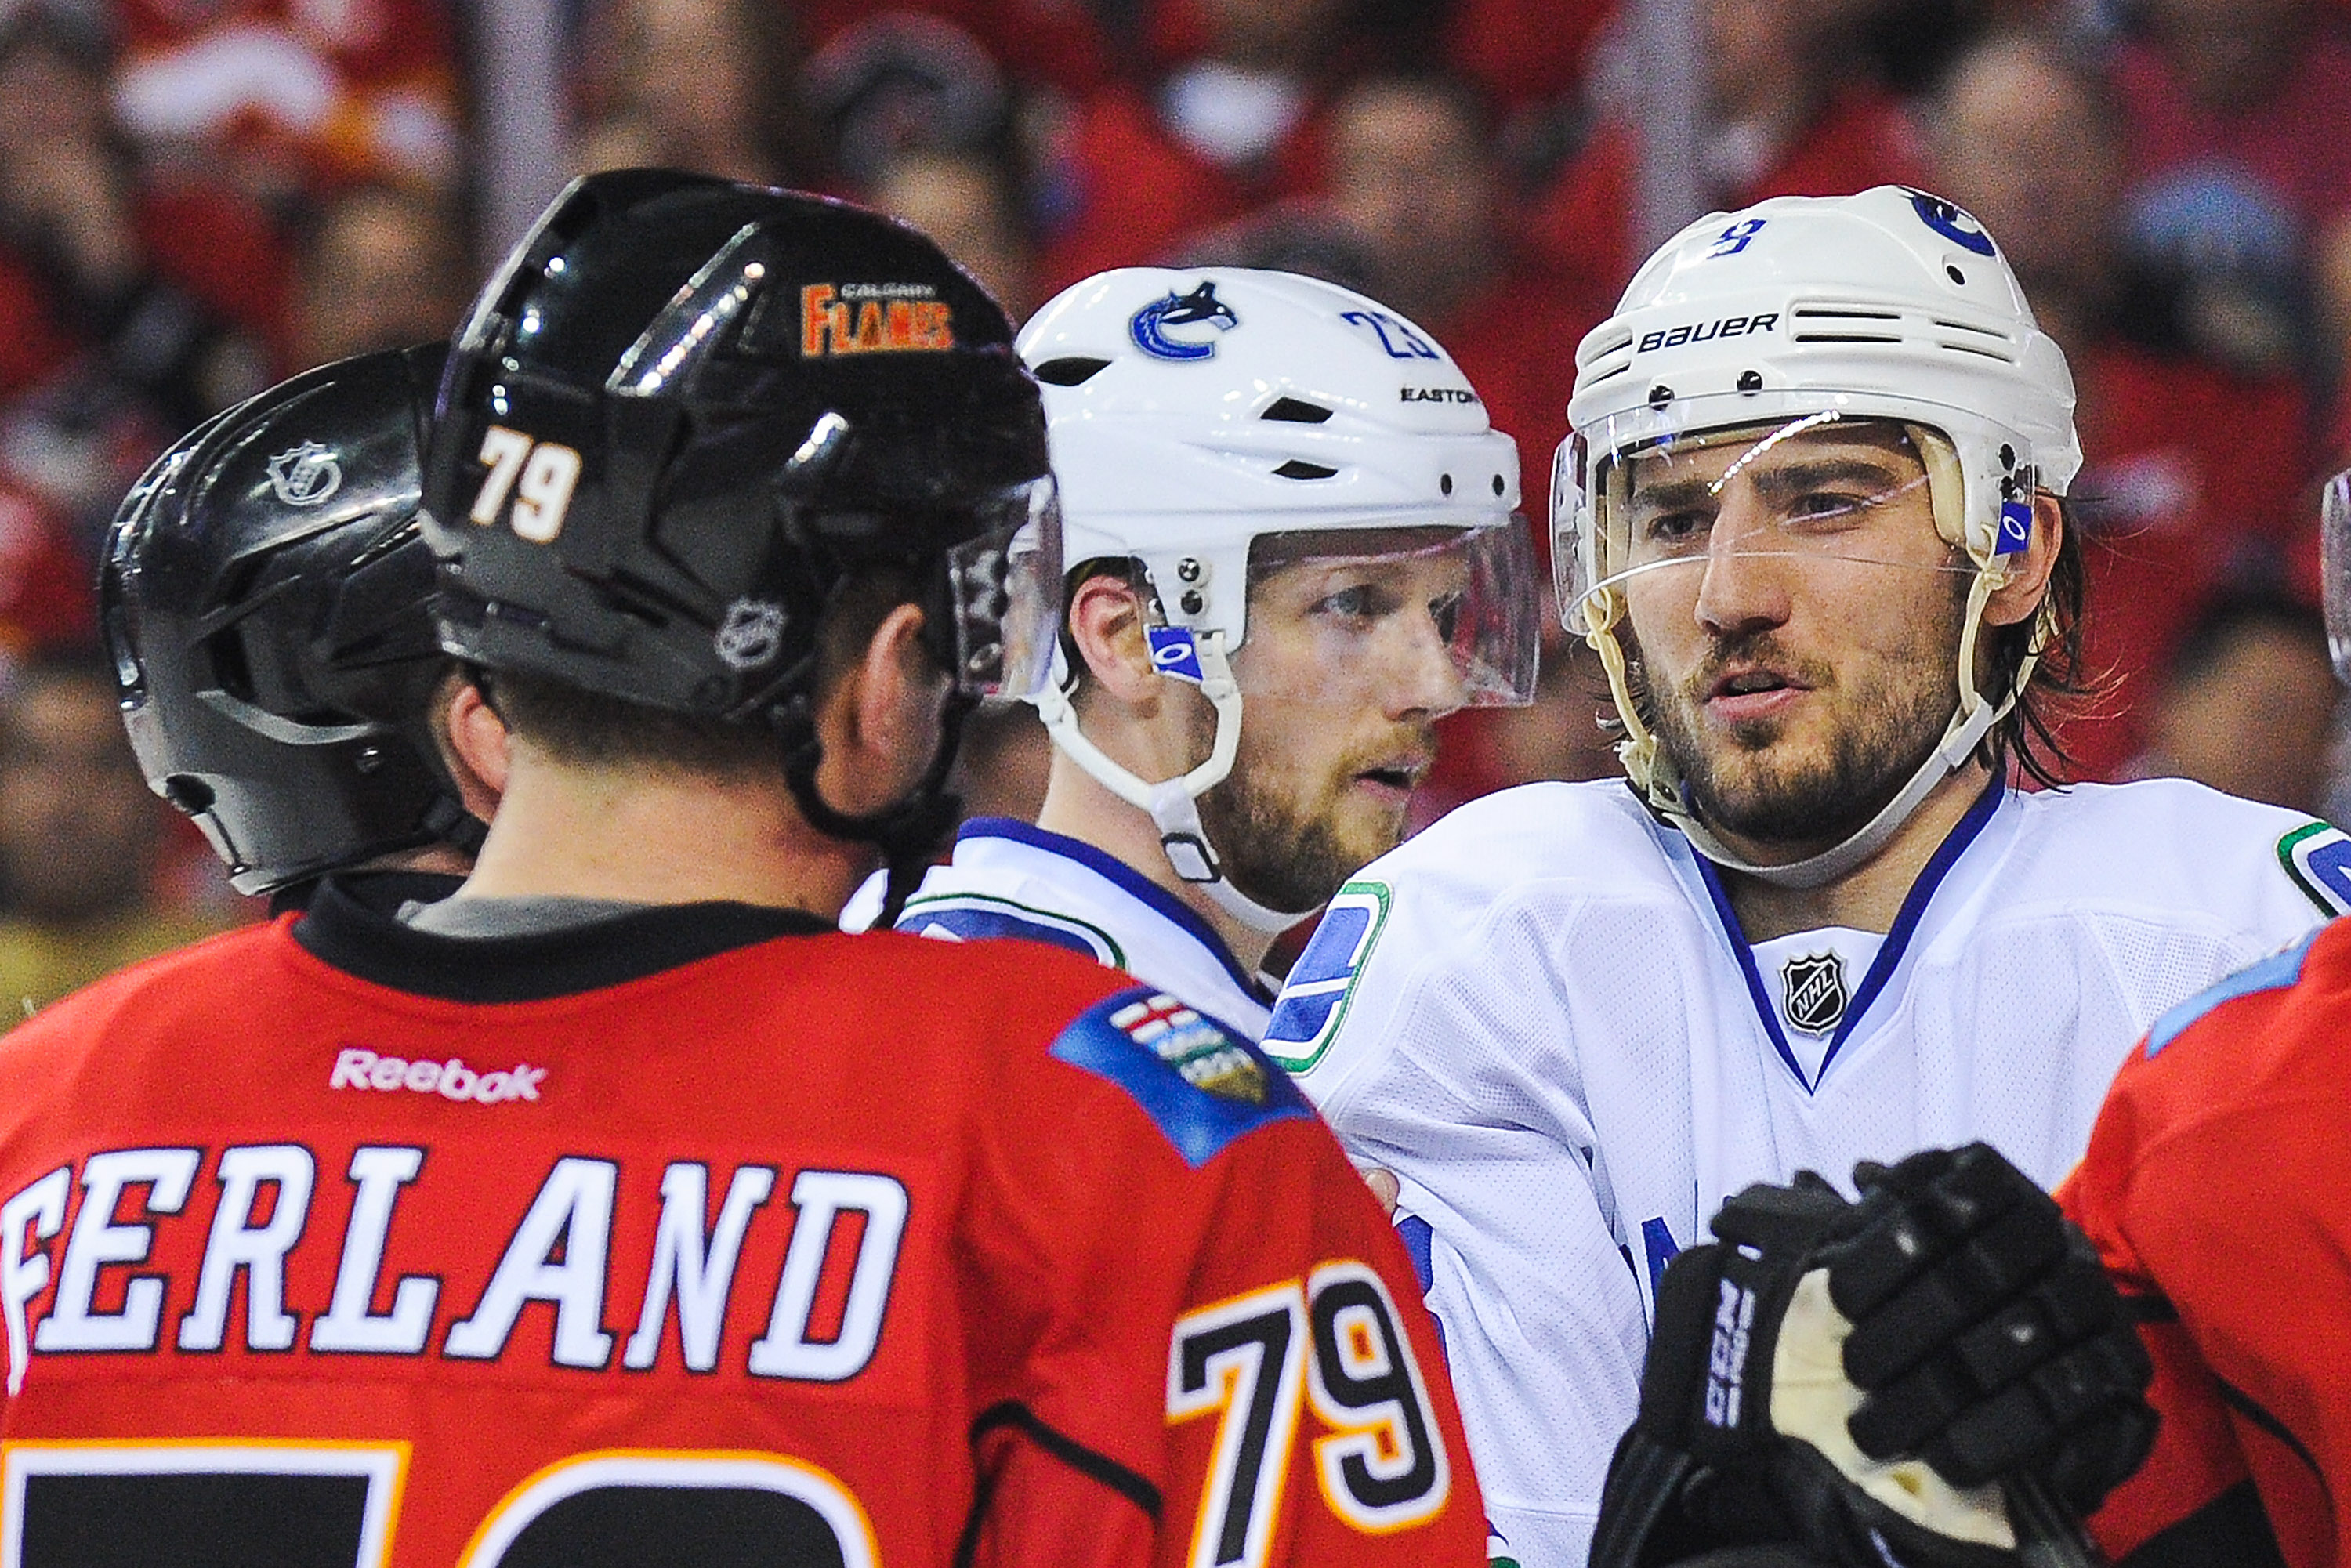 """And then Tanev leaned over and whispered """"You're a fraud, and we know it..."""""""